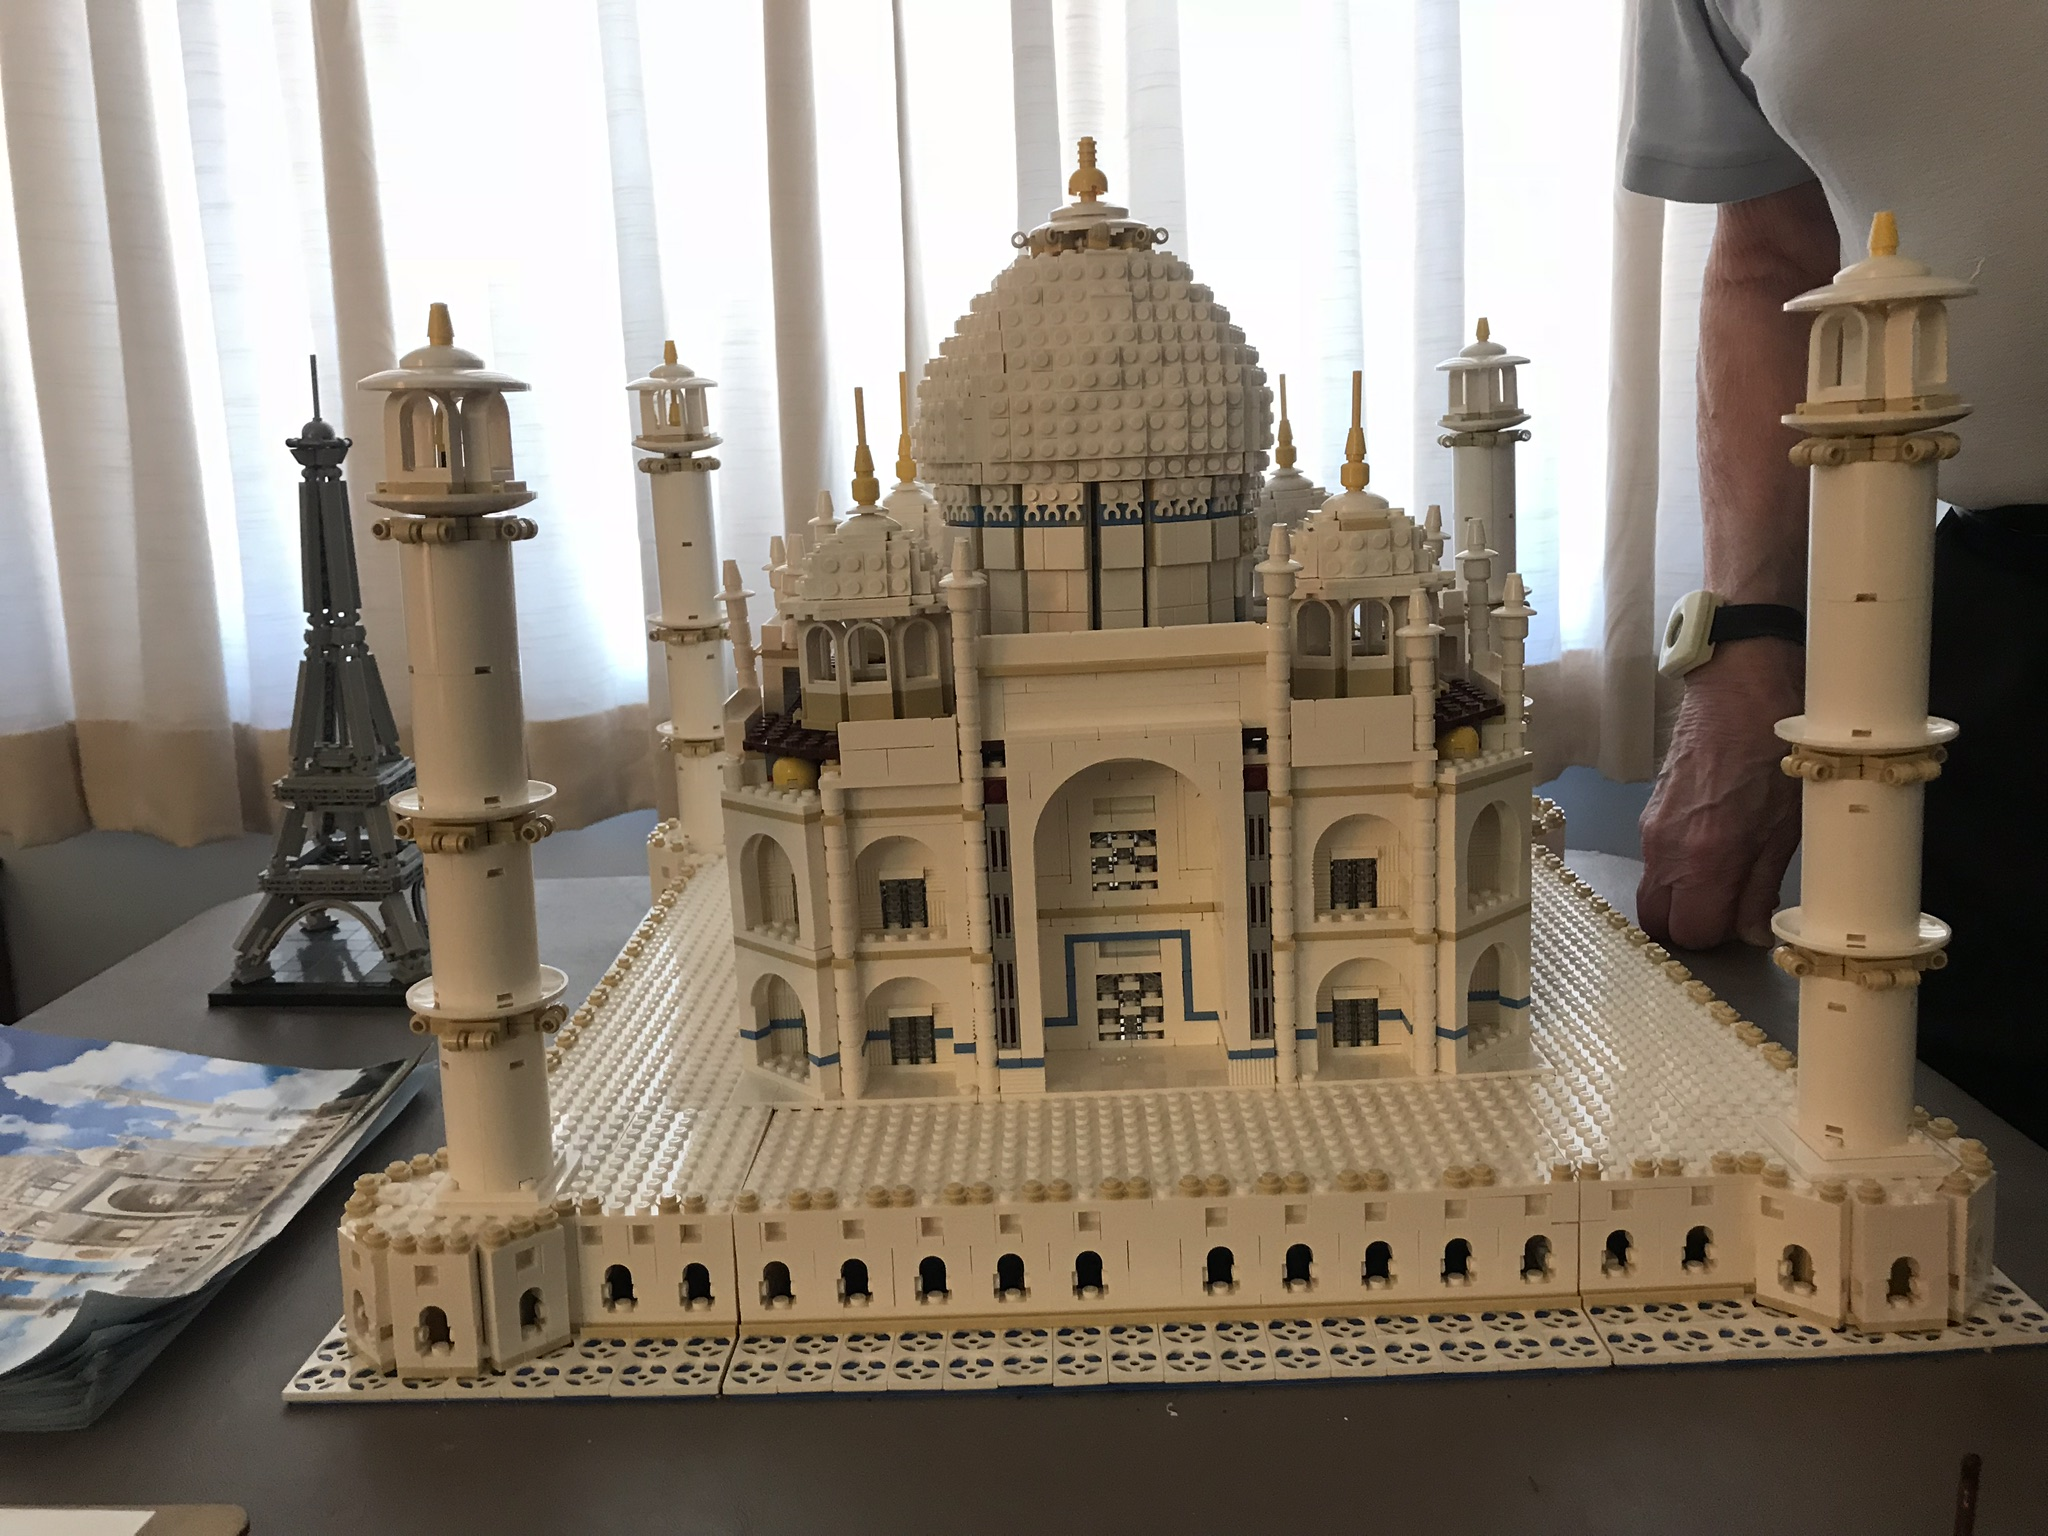 Crosby Commons Resident Completes LEGO Set